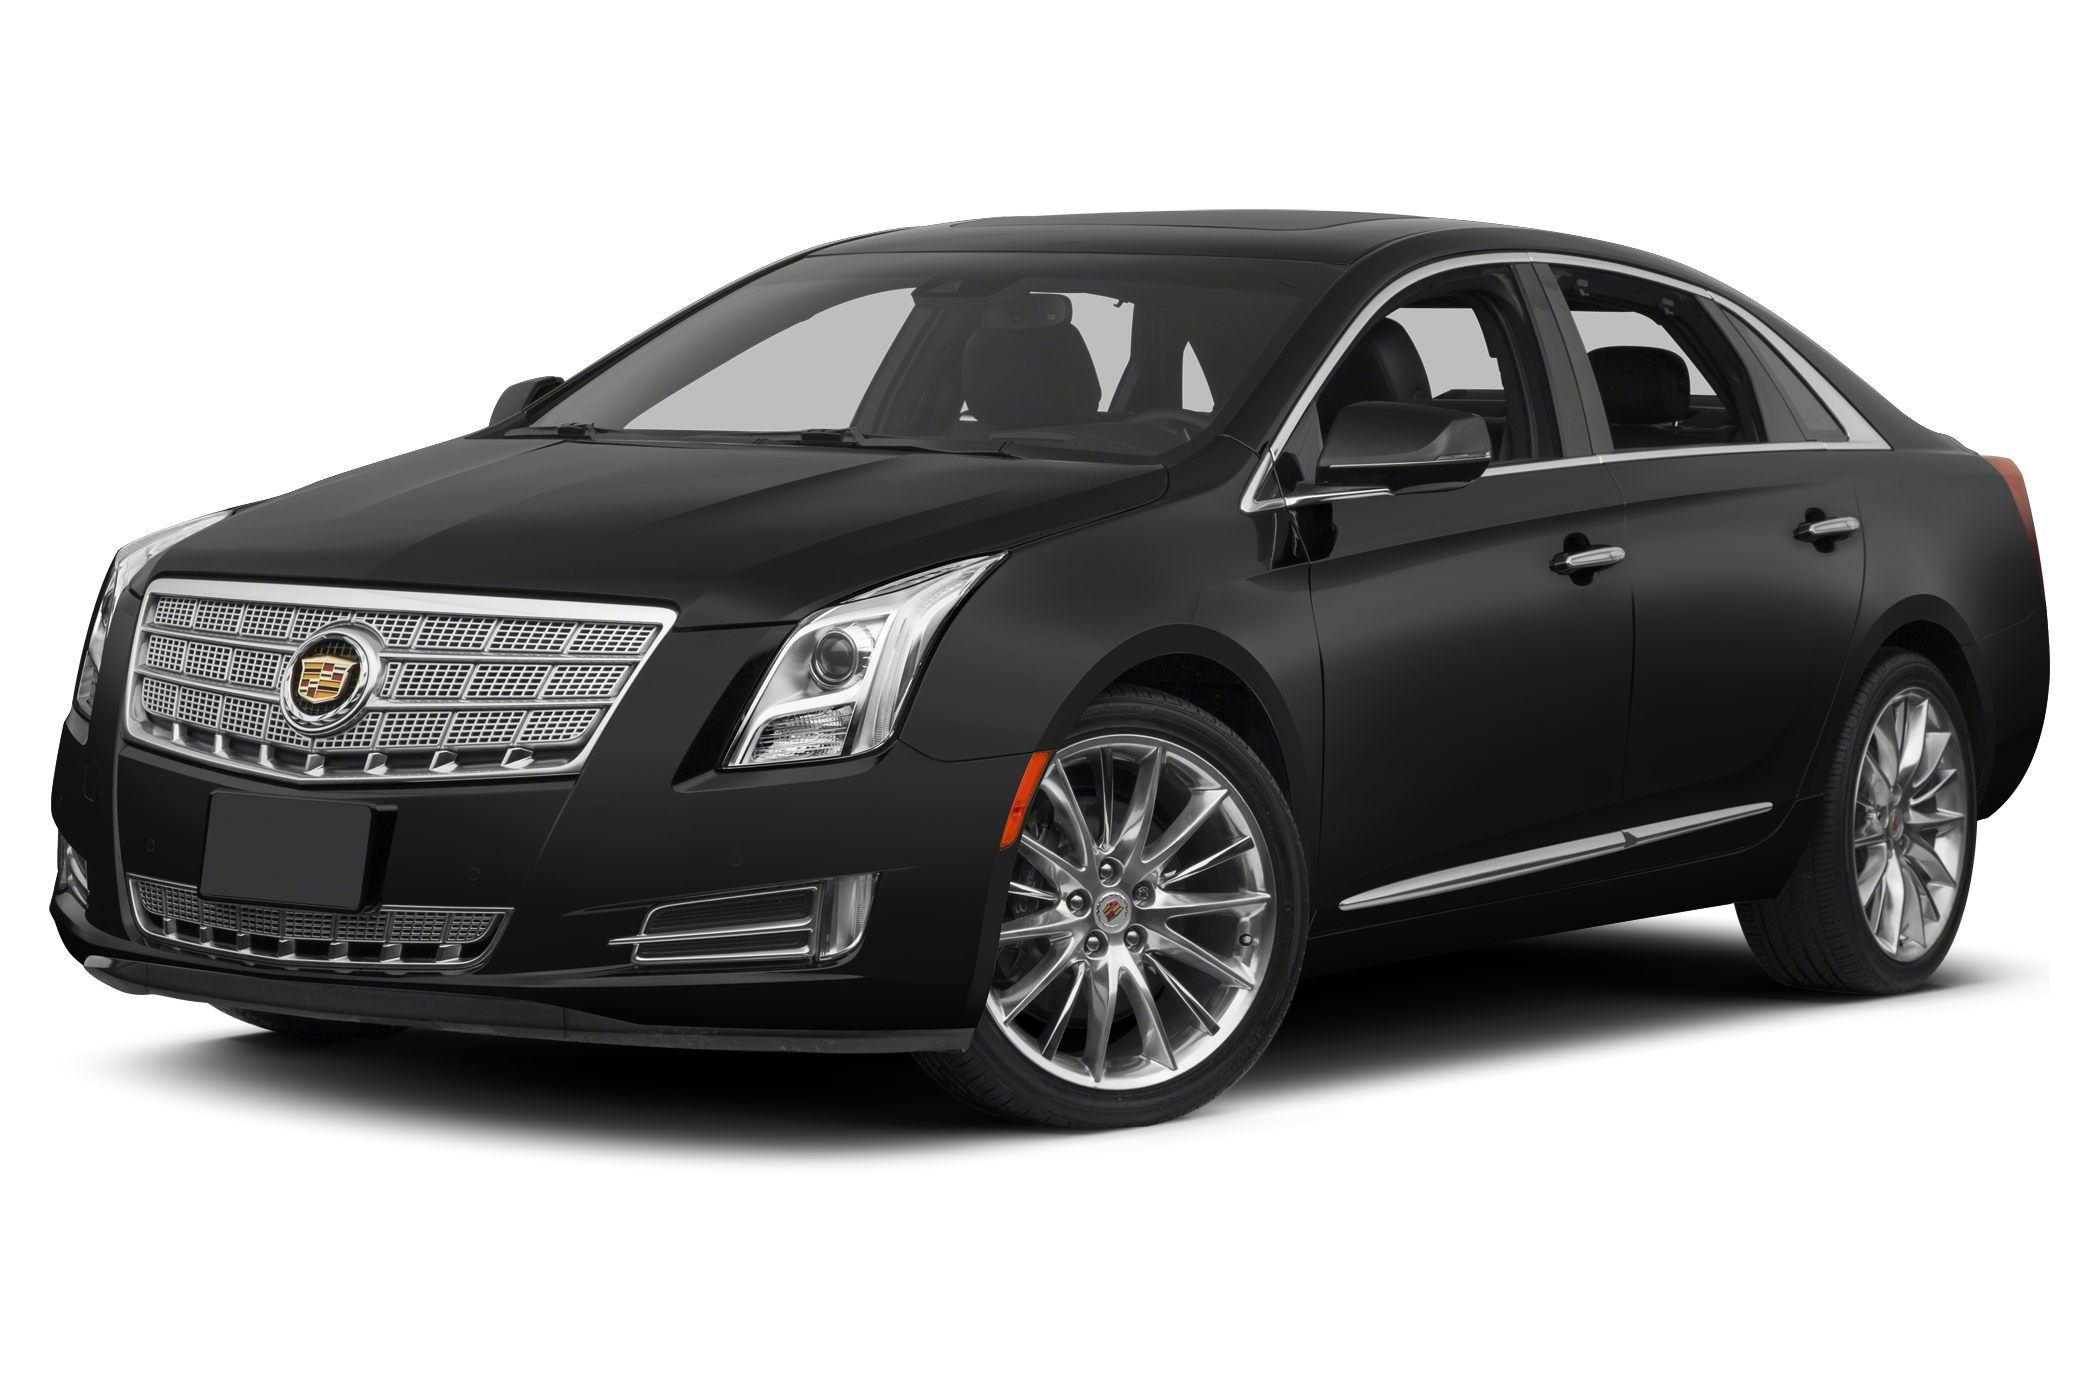 2013 Cadillac XTS Luxury With these low miles this babys barely broken in You can thank the Sun